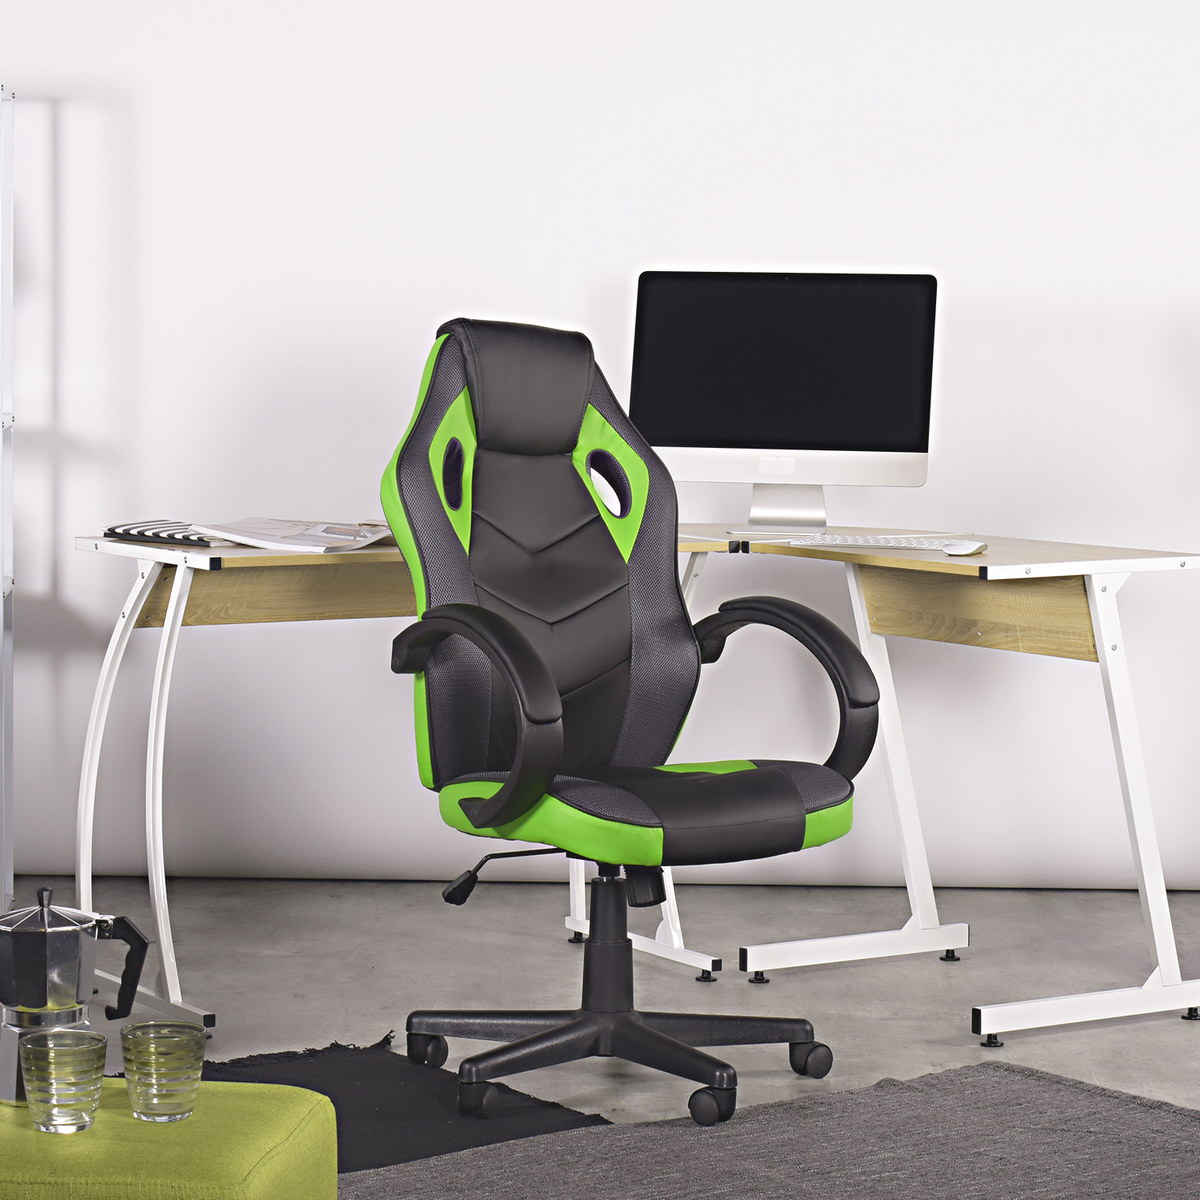 thumbnail 20 - Gaming Racing Chair Office High Back Ergonomic Computer Desk Swivel PU Leather